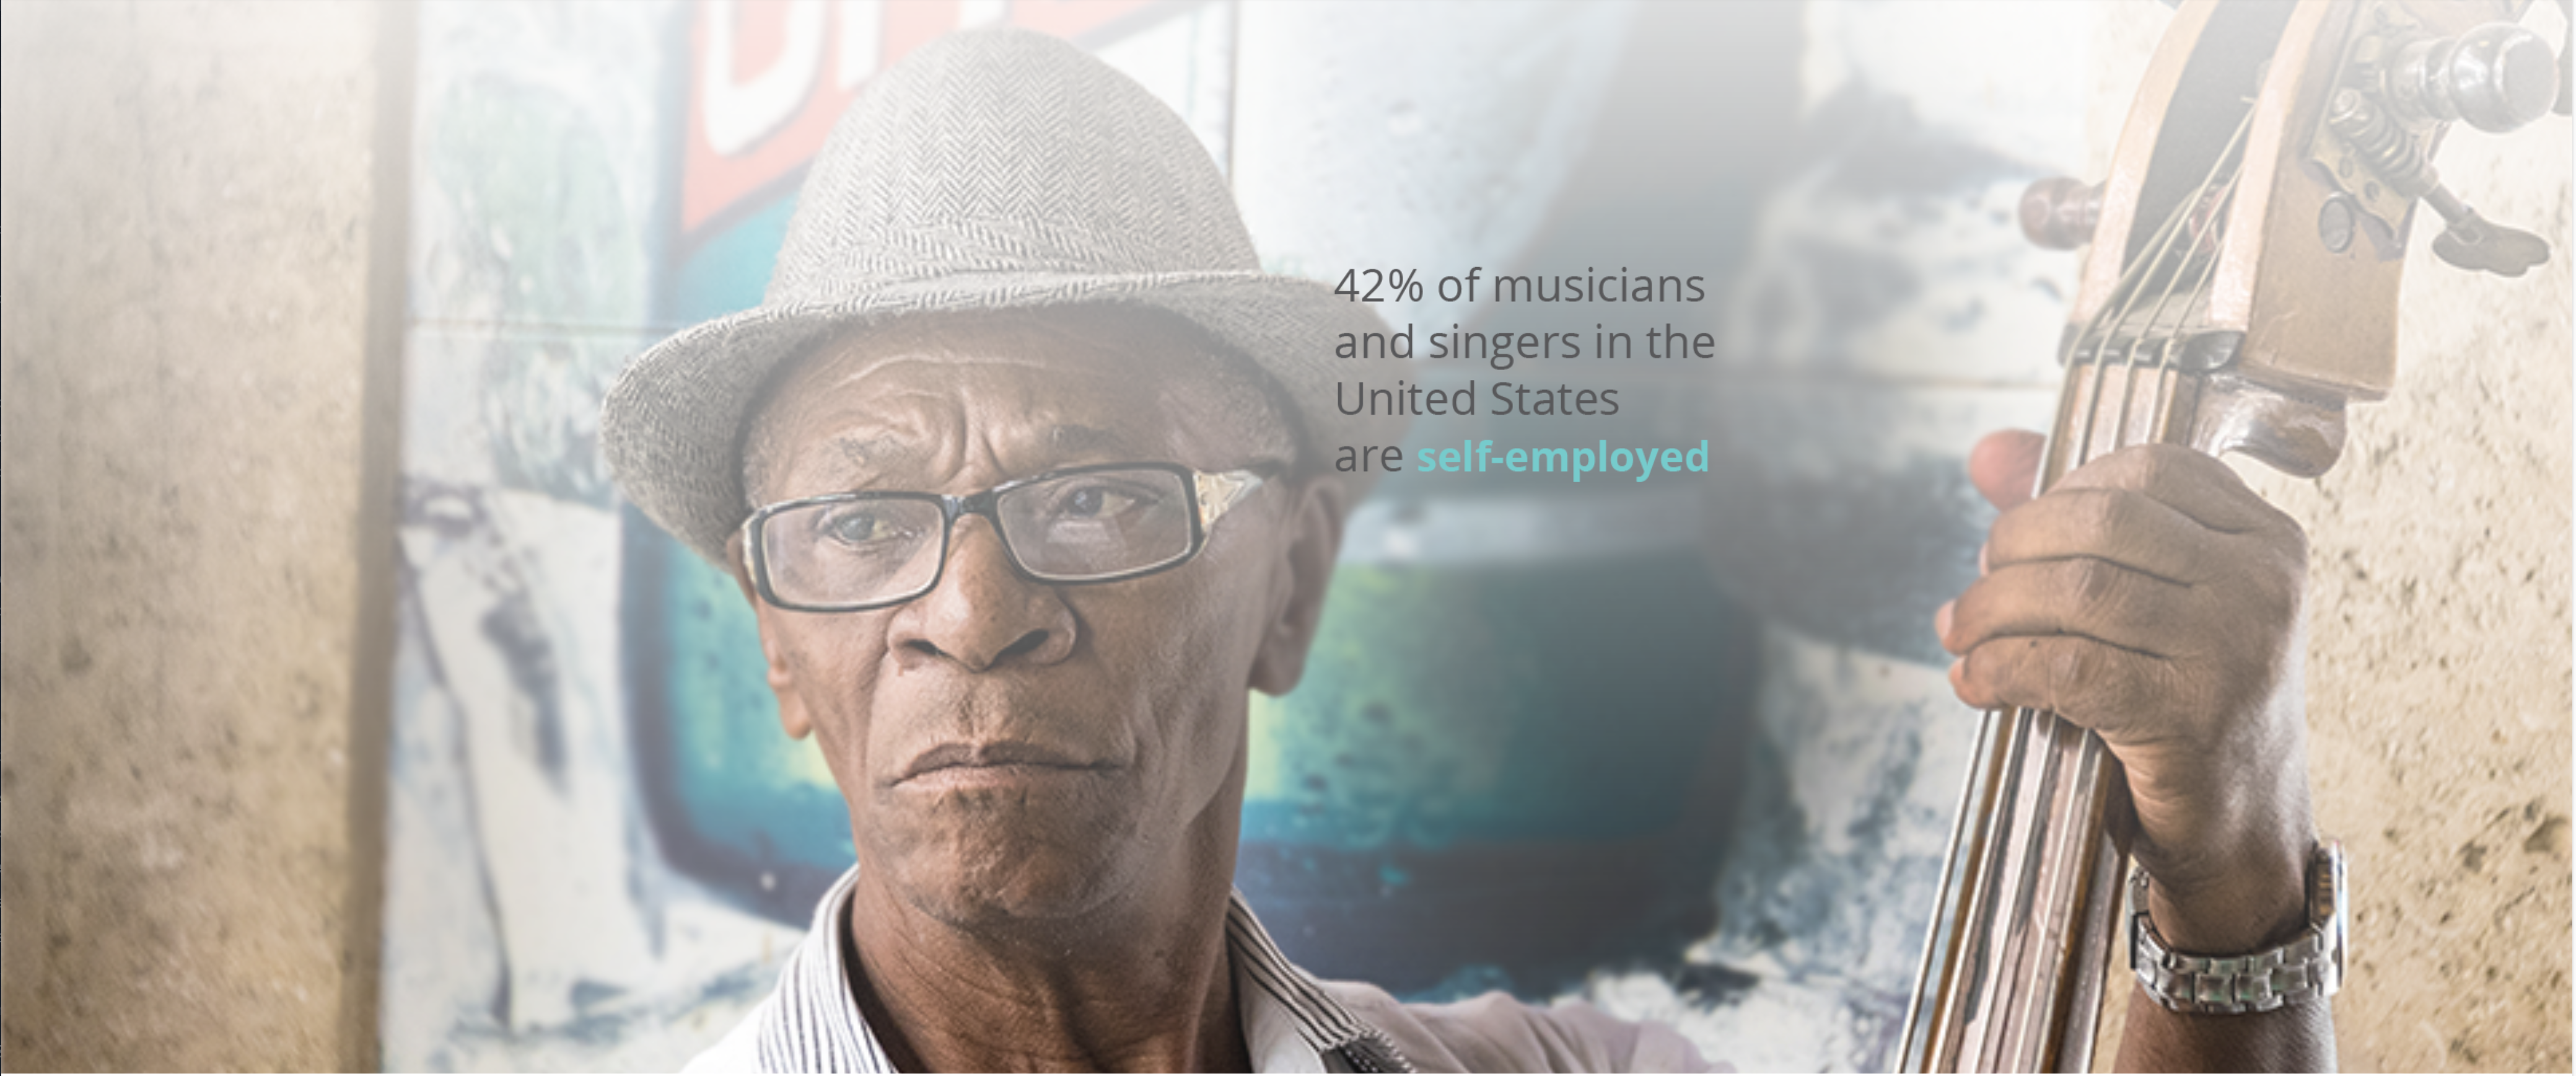 An African American bass player in the background with text that reads 42% of musicians and singers in the United States are self-employed.